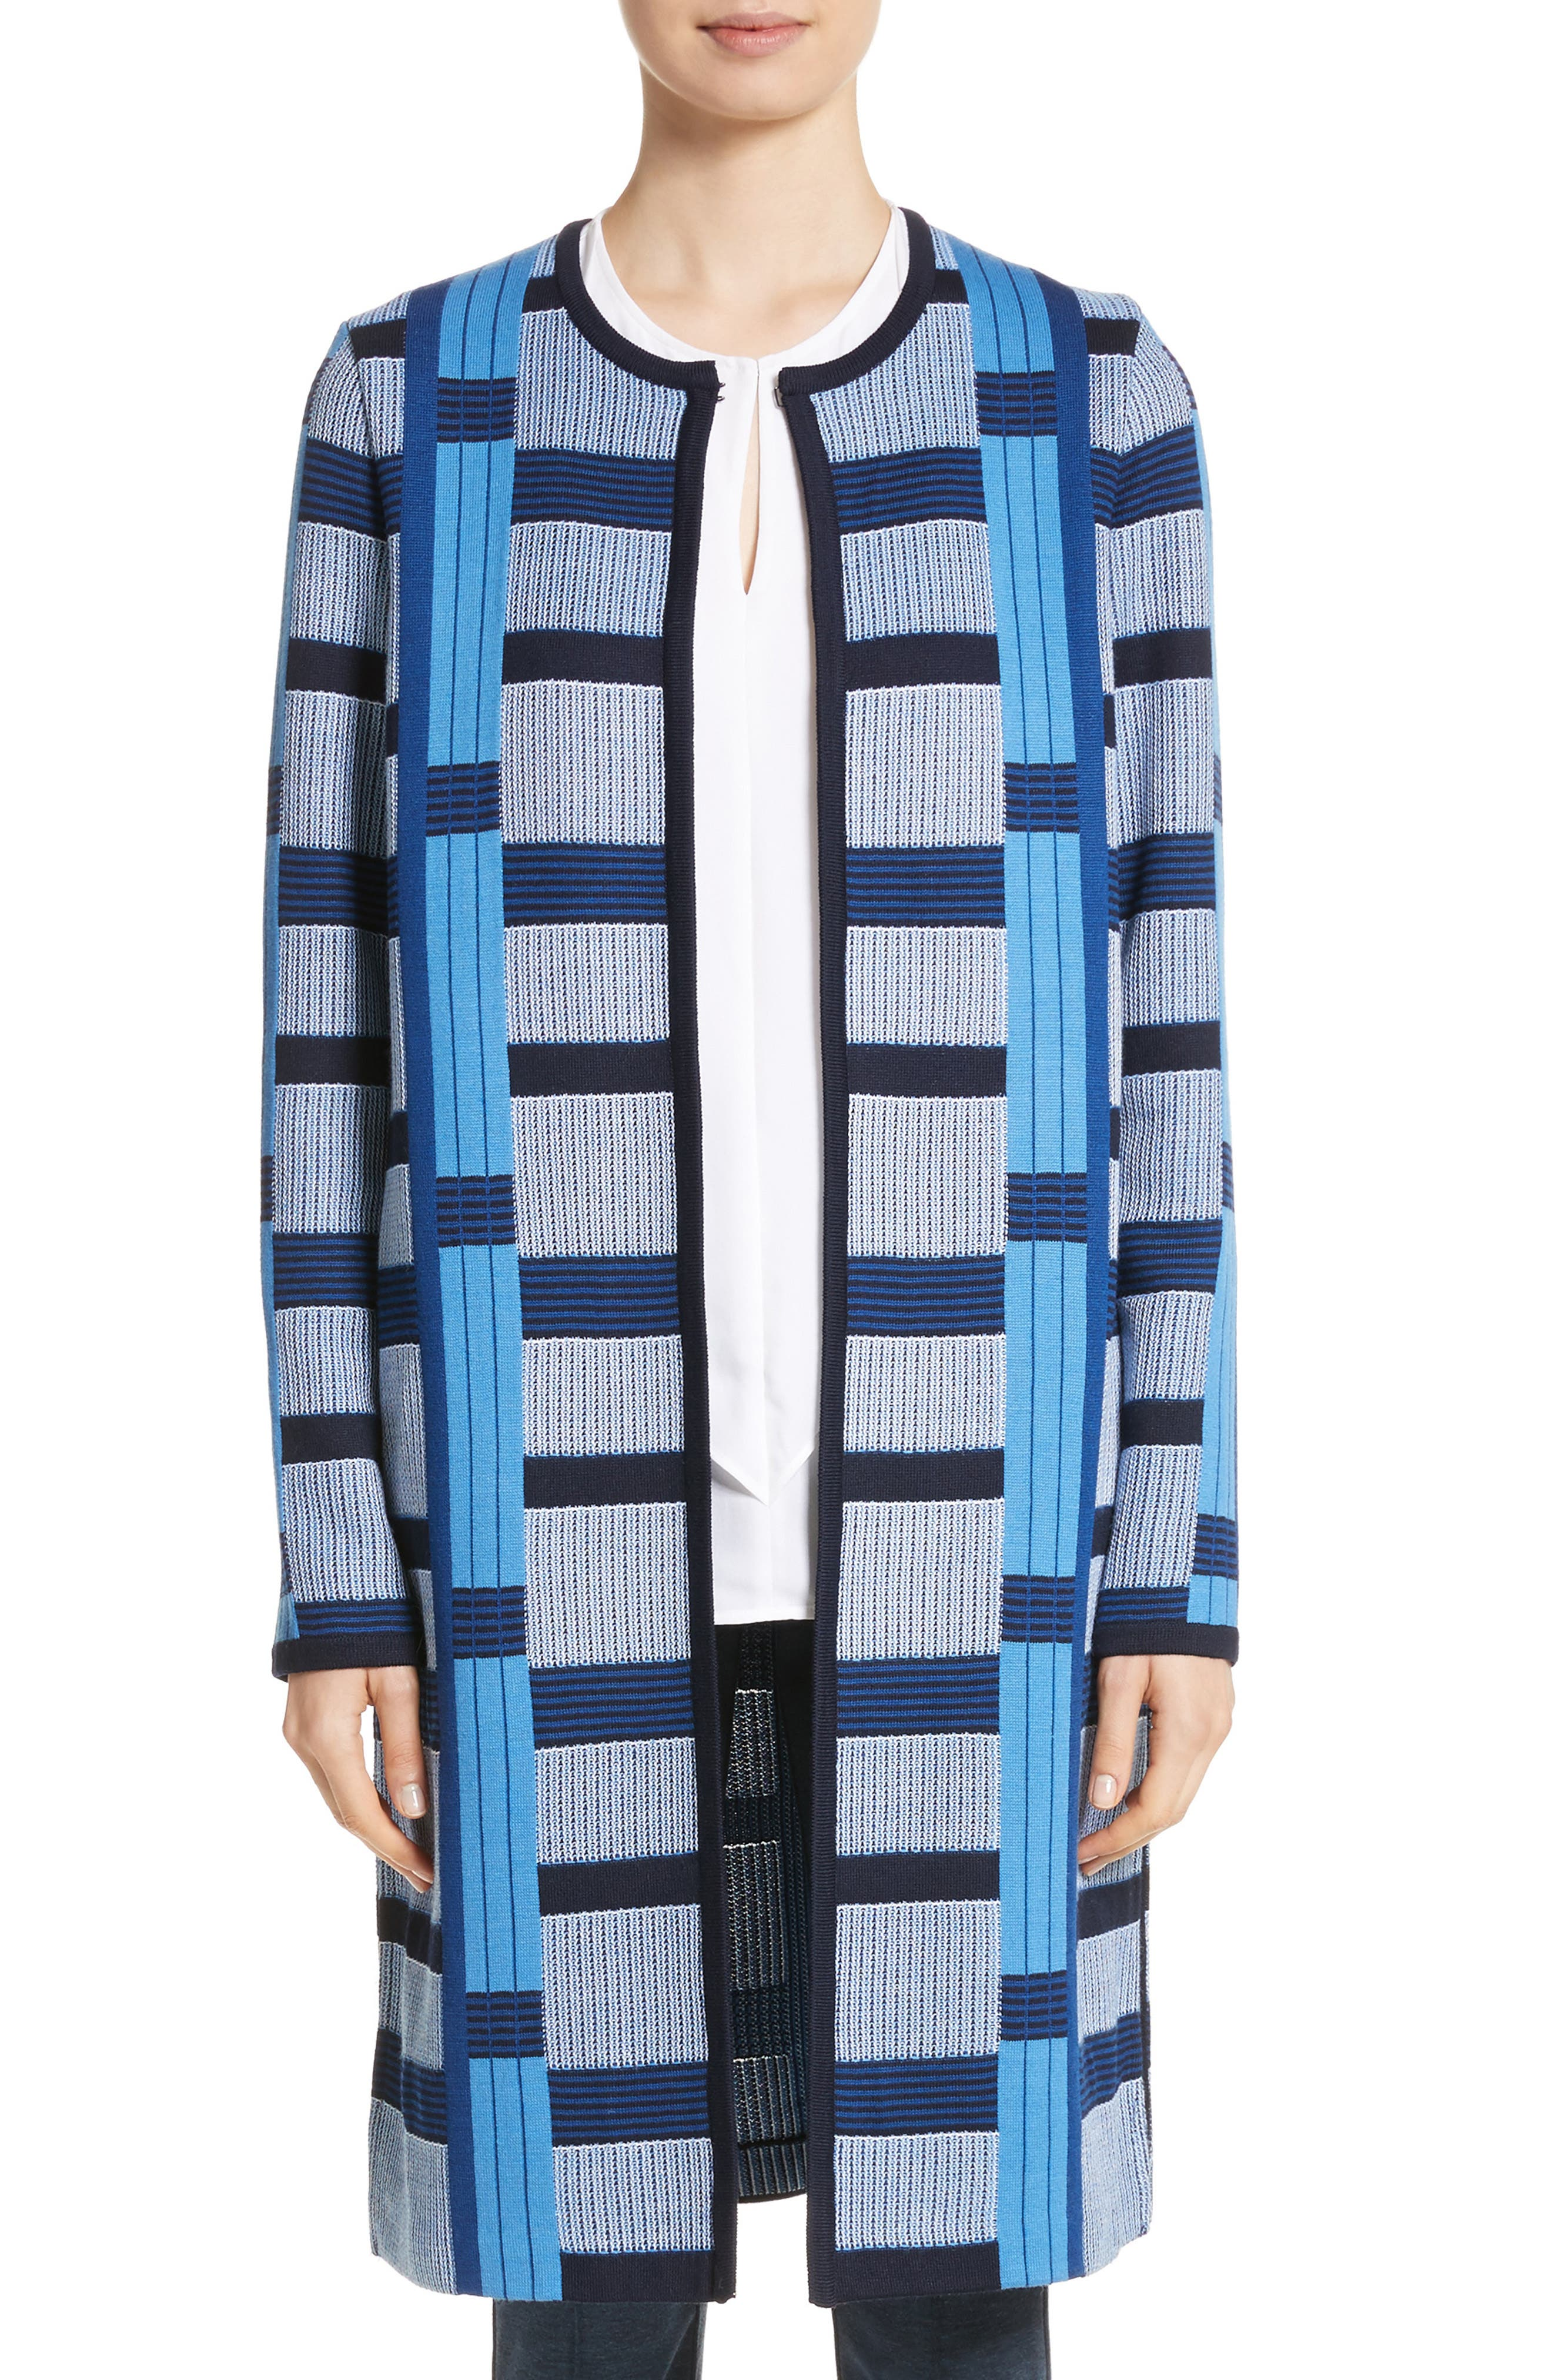 Alternate Image 1 Selected - St. John Collection Colorblock Knit Jacket